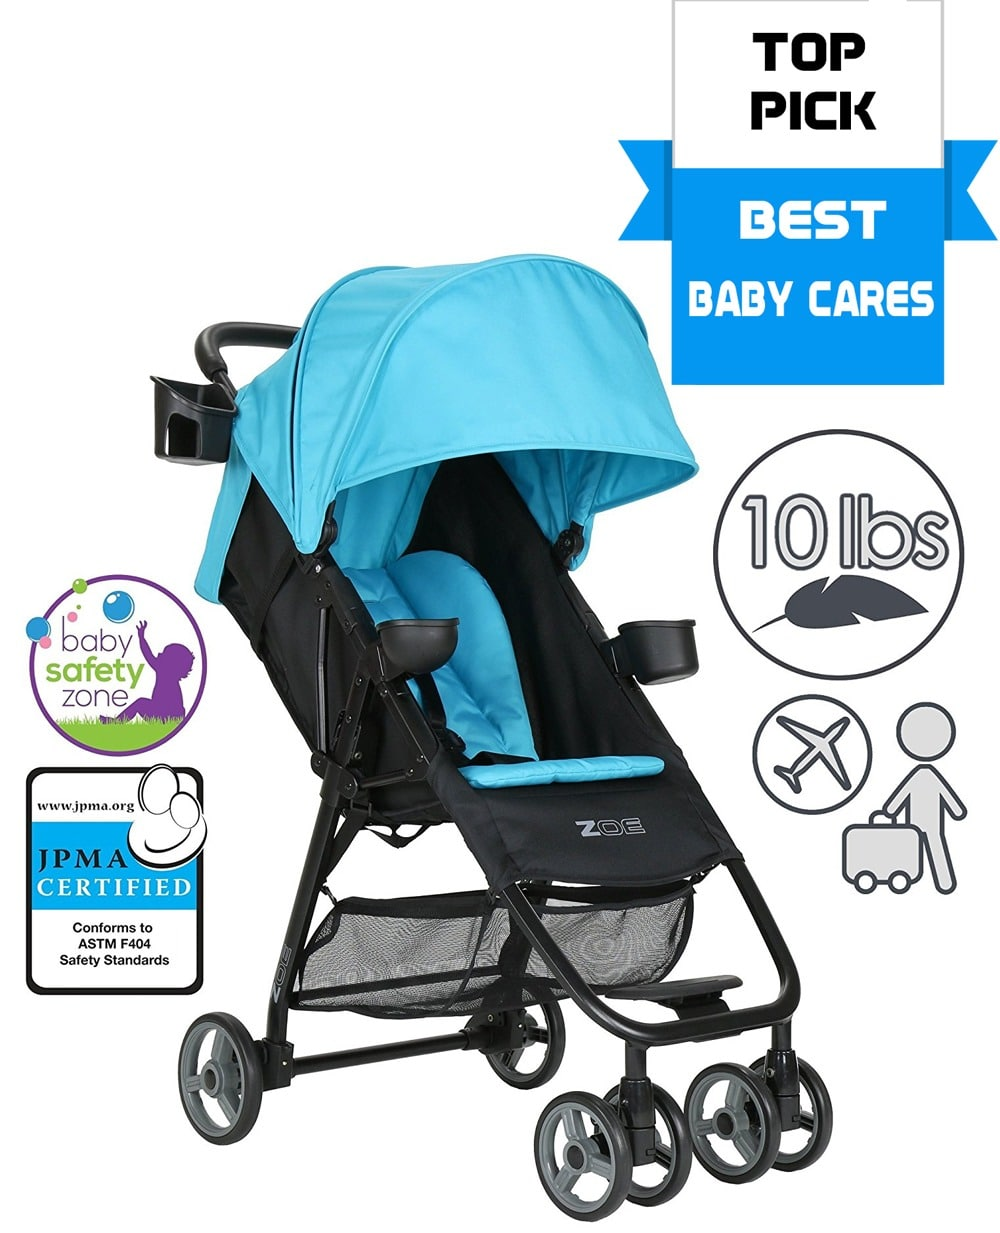 Double Umbrella Stroller Zoe Recommended 10 Best Umbrella Stroller Reviews And Guide 2018